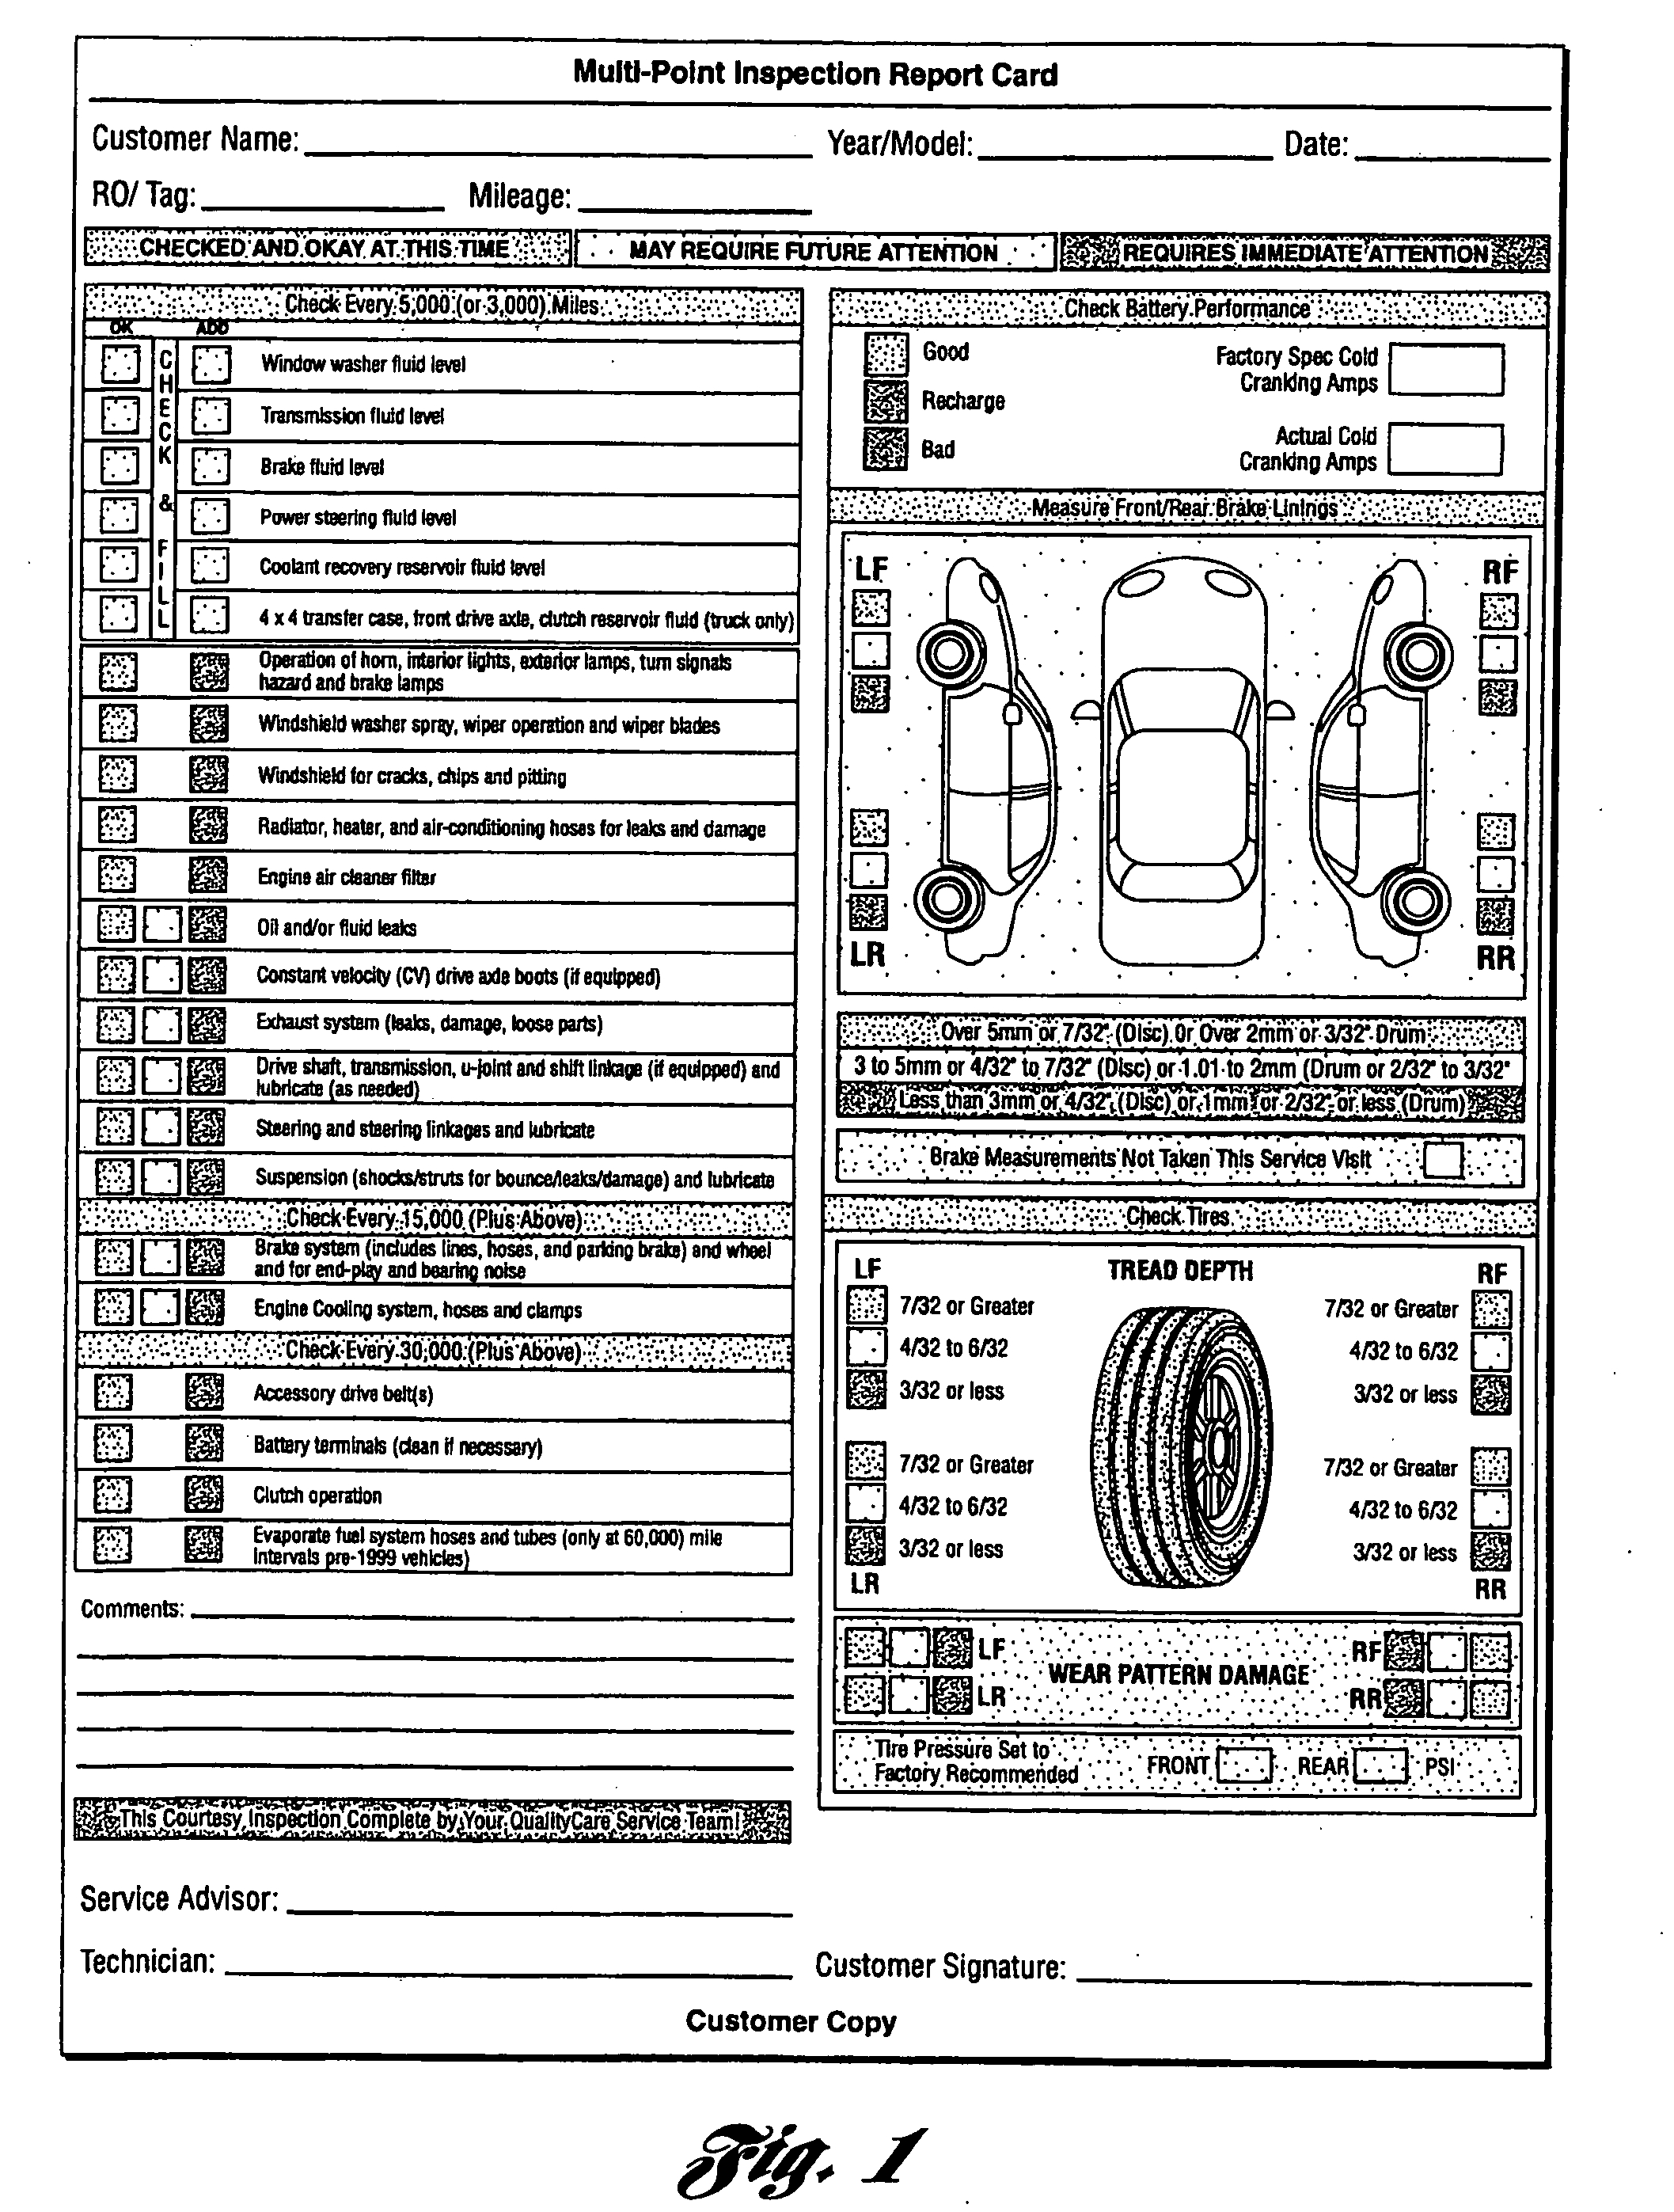 Multi Point Inspection Report Card As Recommendedford In Vehicle Inspection Report Template